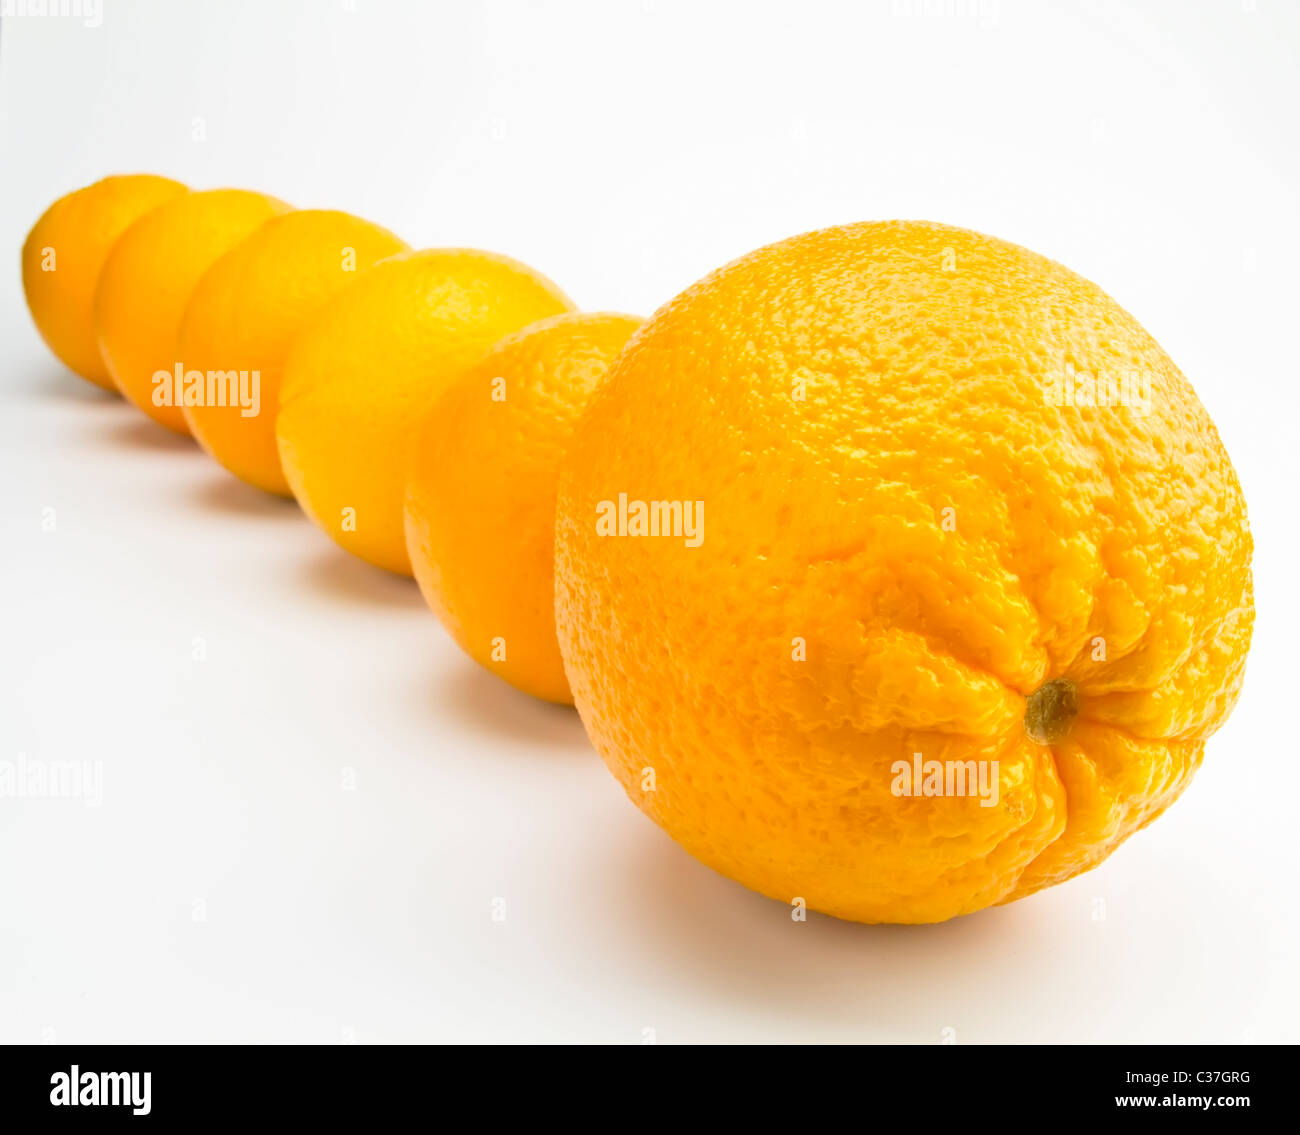 oranges in line isolated on a white background - Stock Image